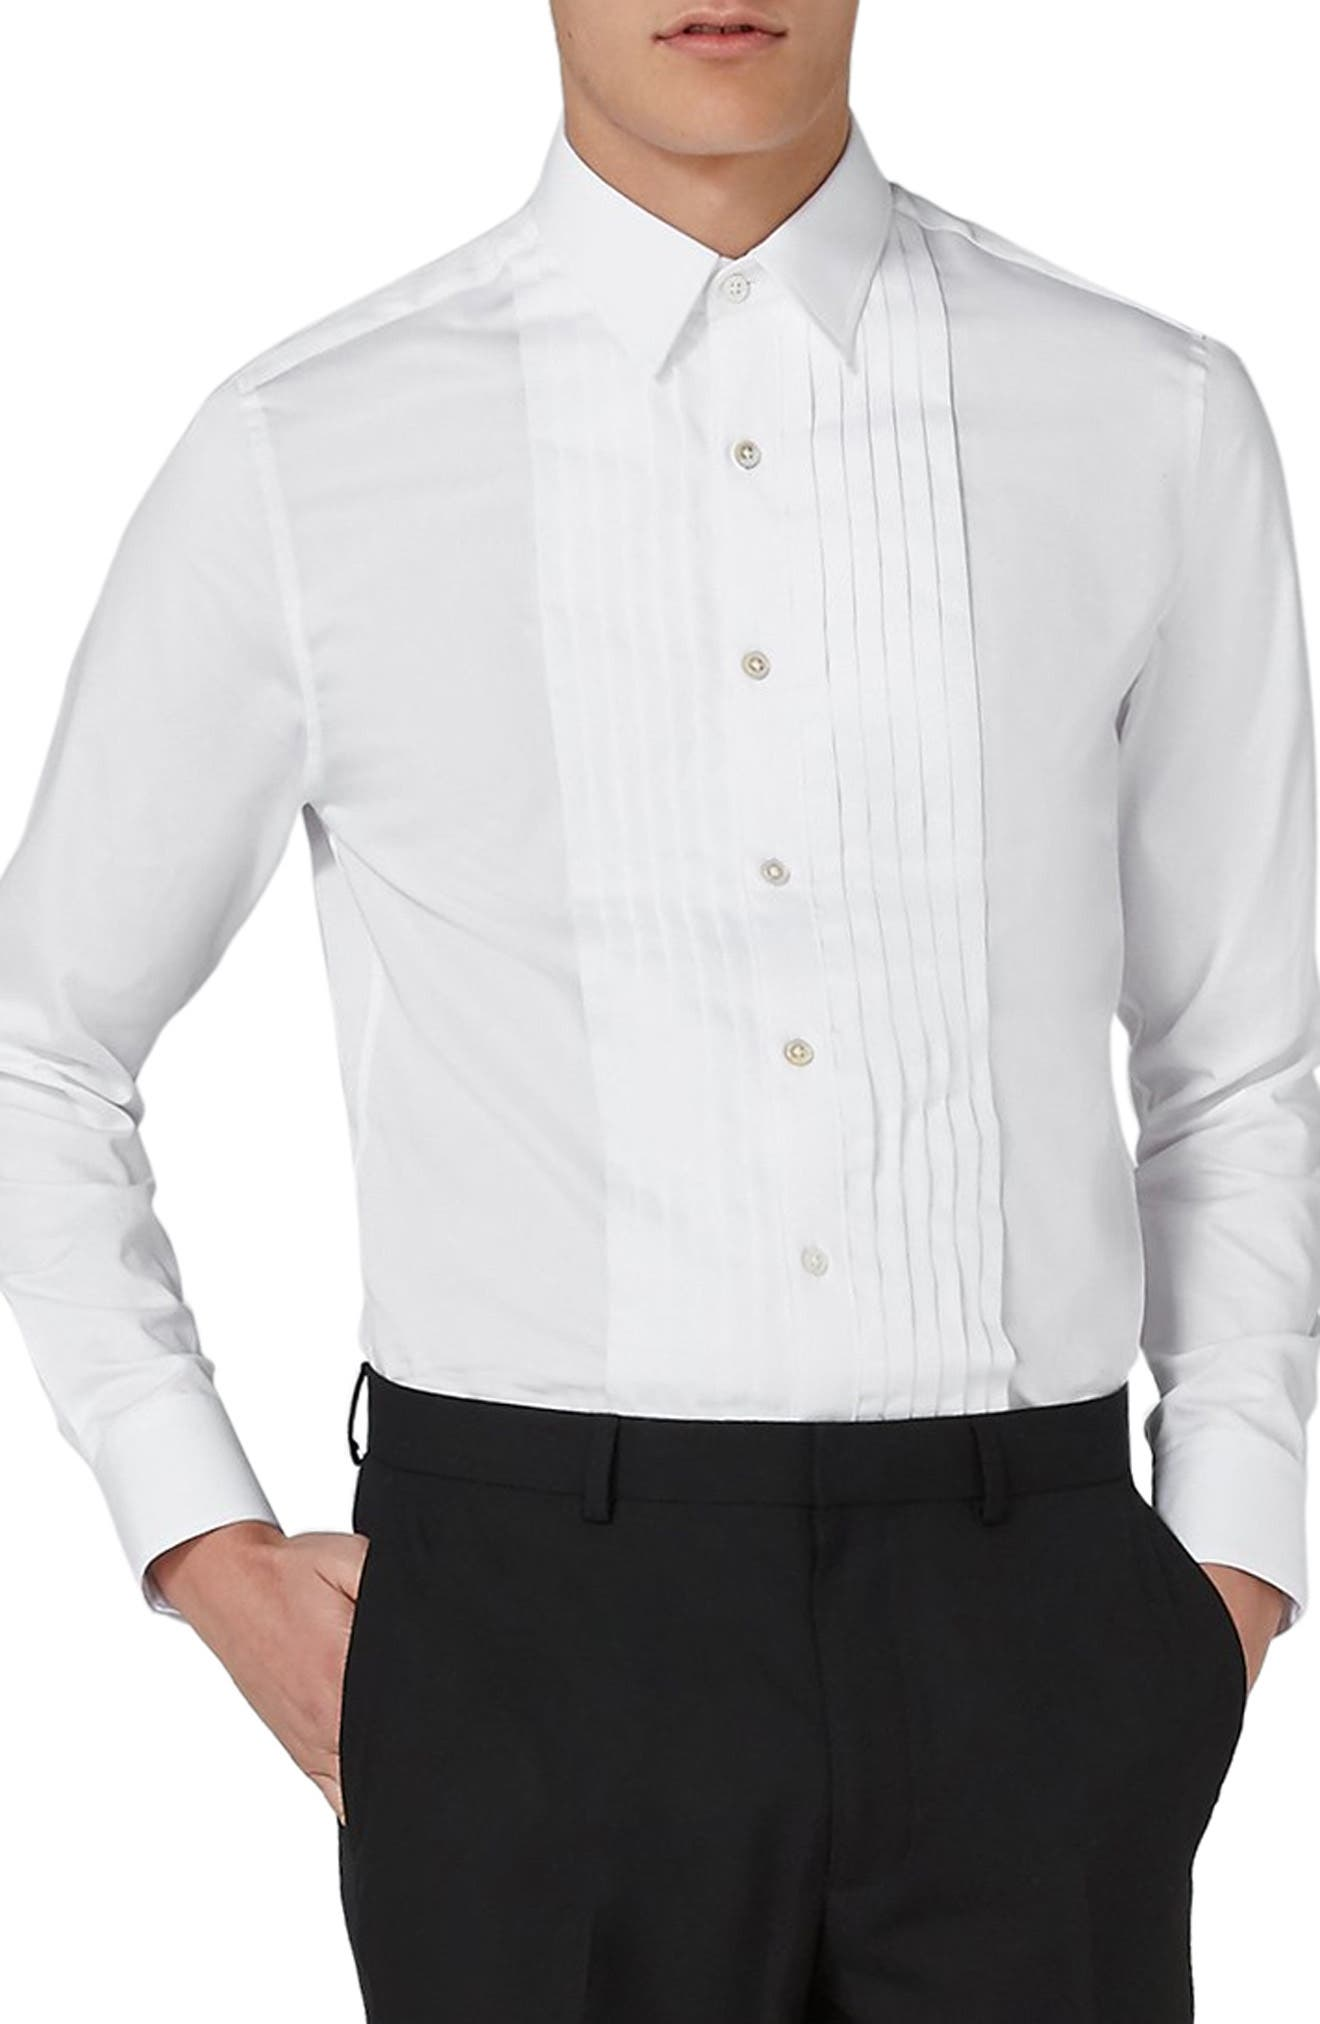 Pleated Tuxedo Shirt,                             Main thumbnail 1, color,                             White